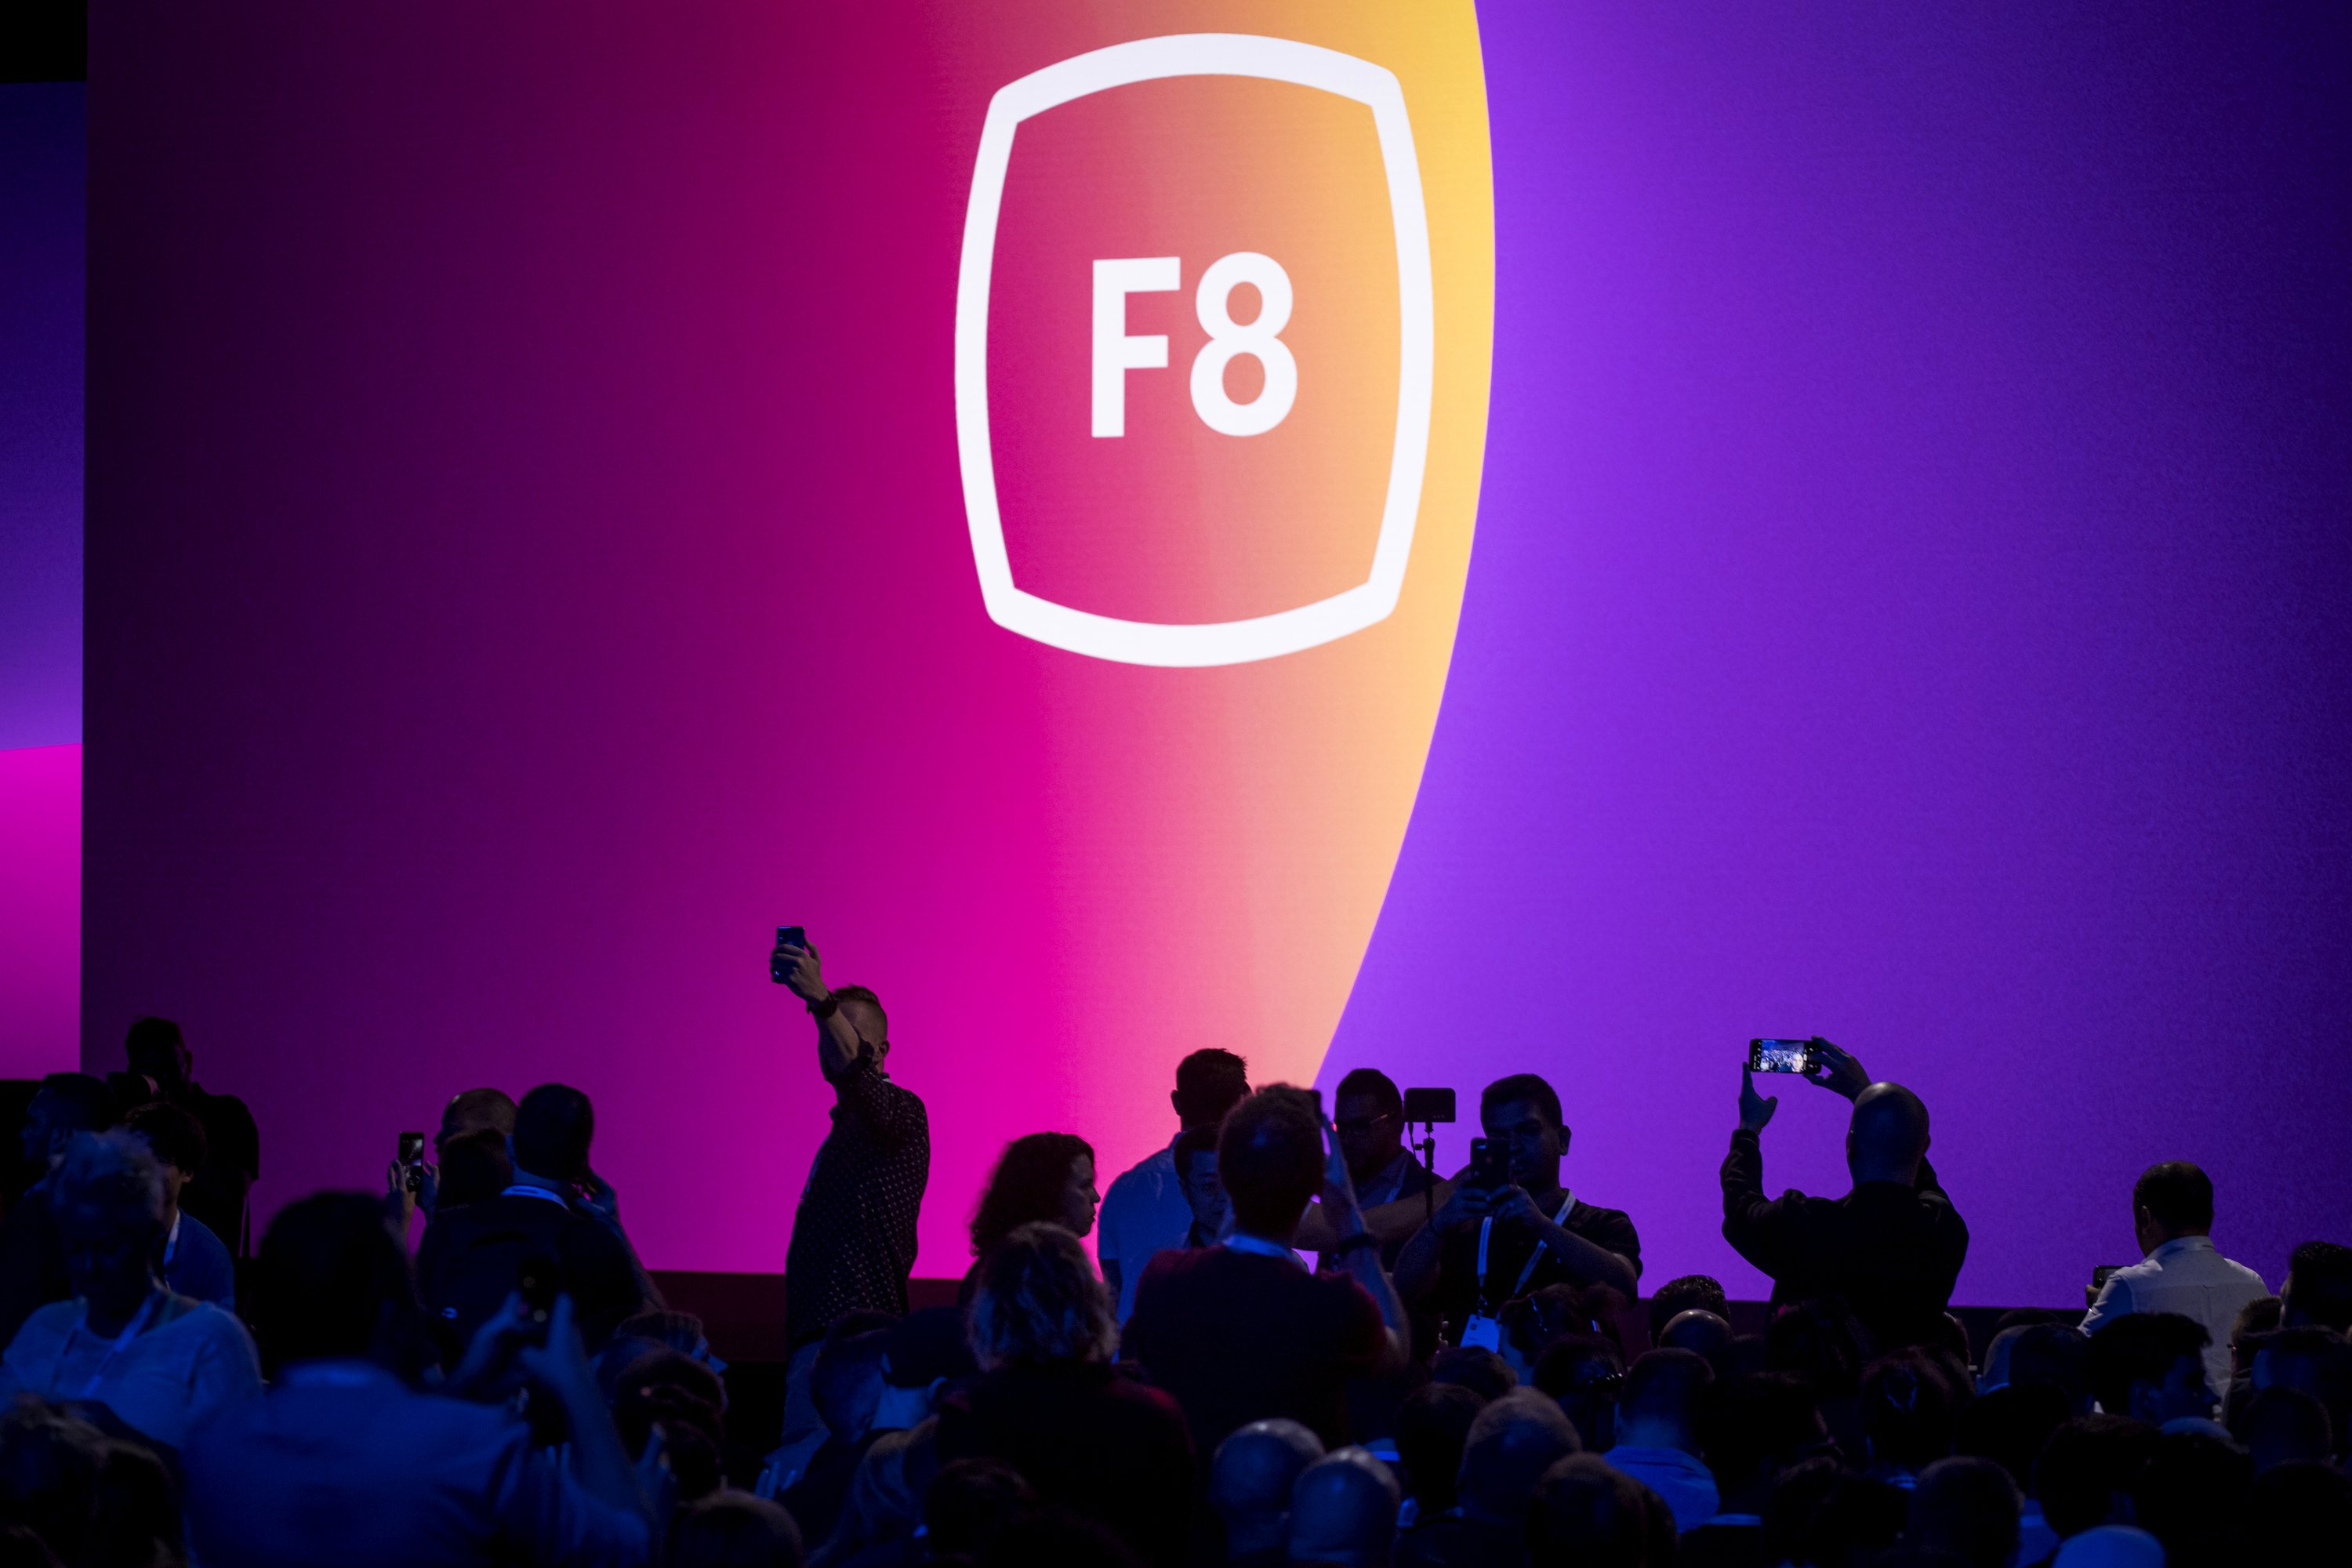 Facebook unveils redesign of the social network and new products at F8